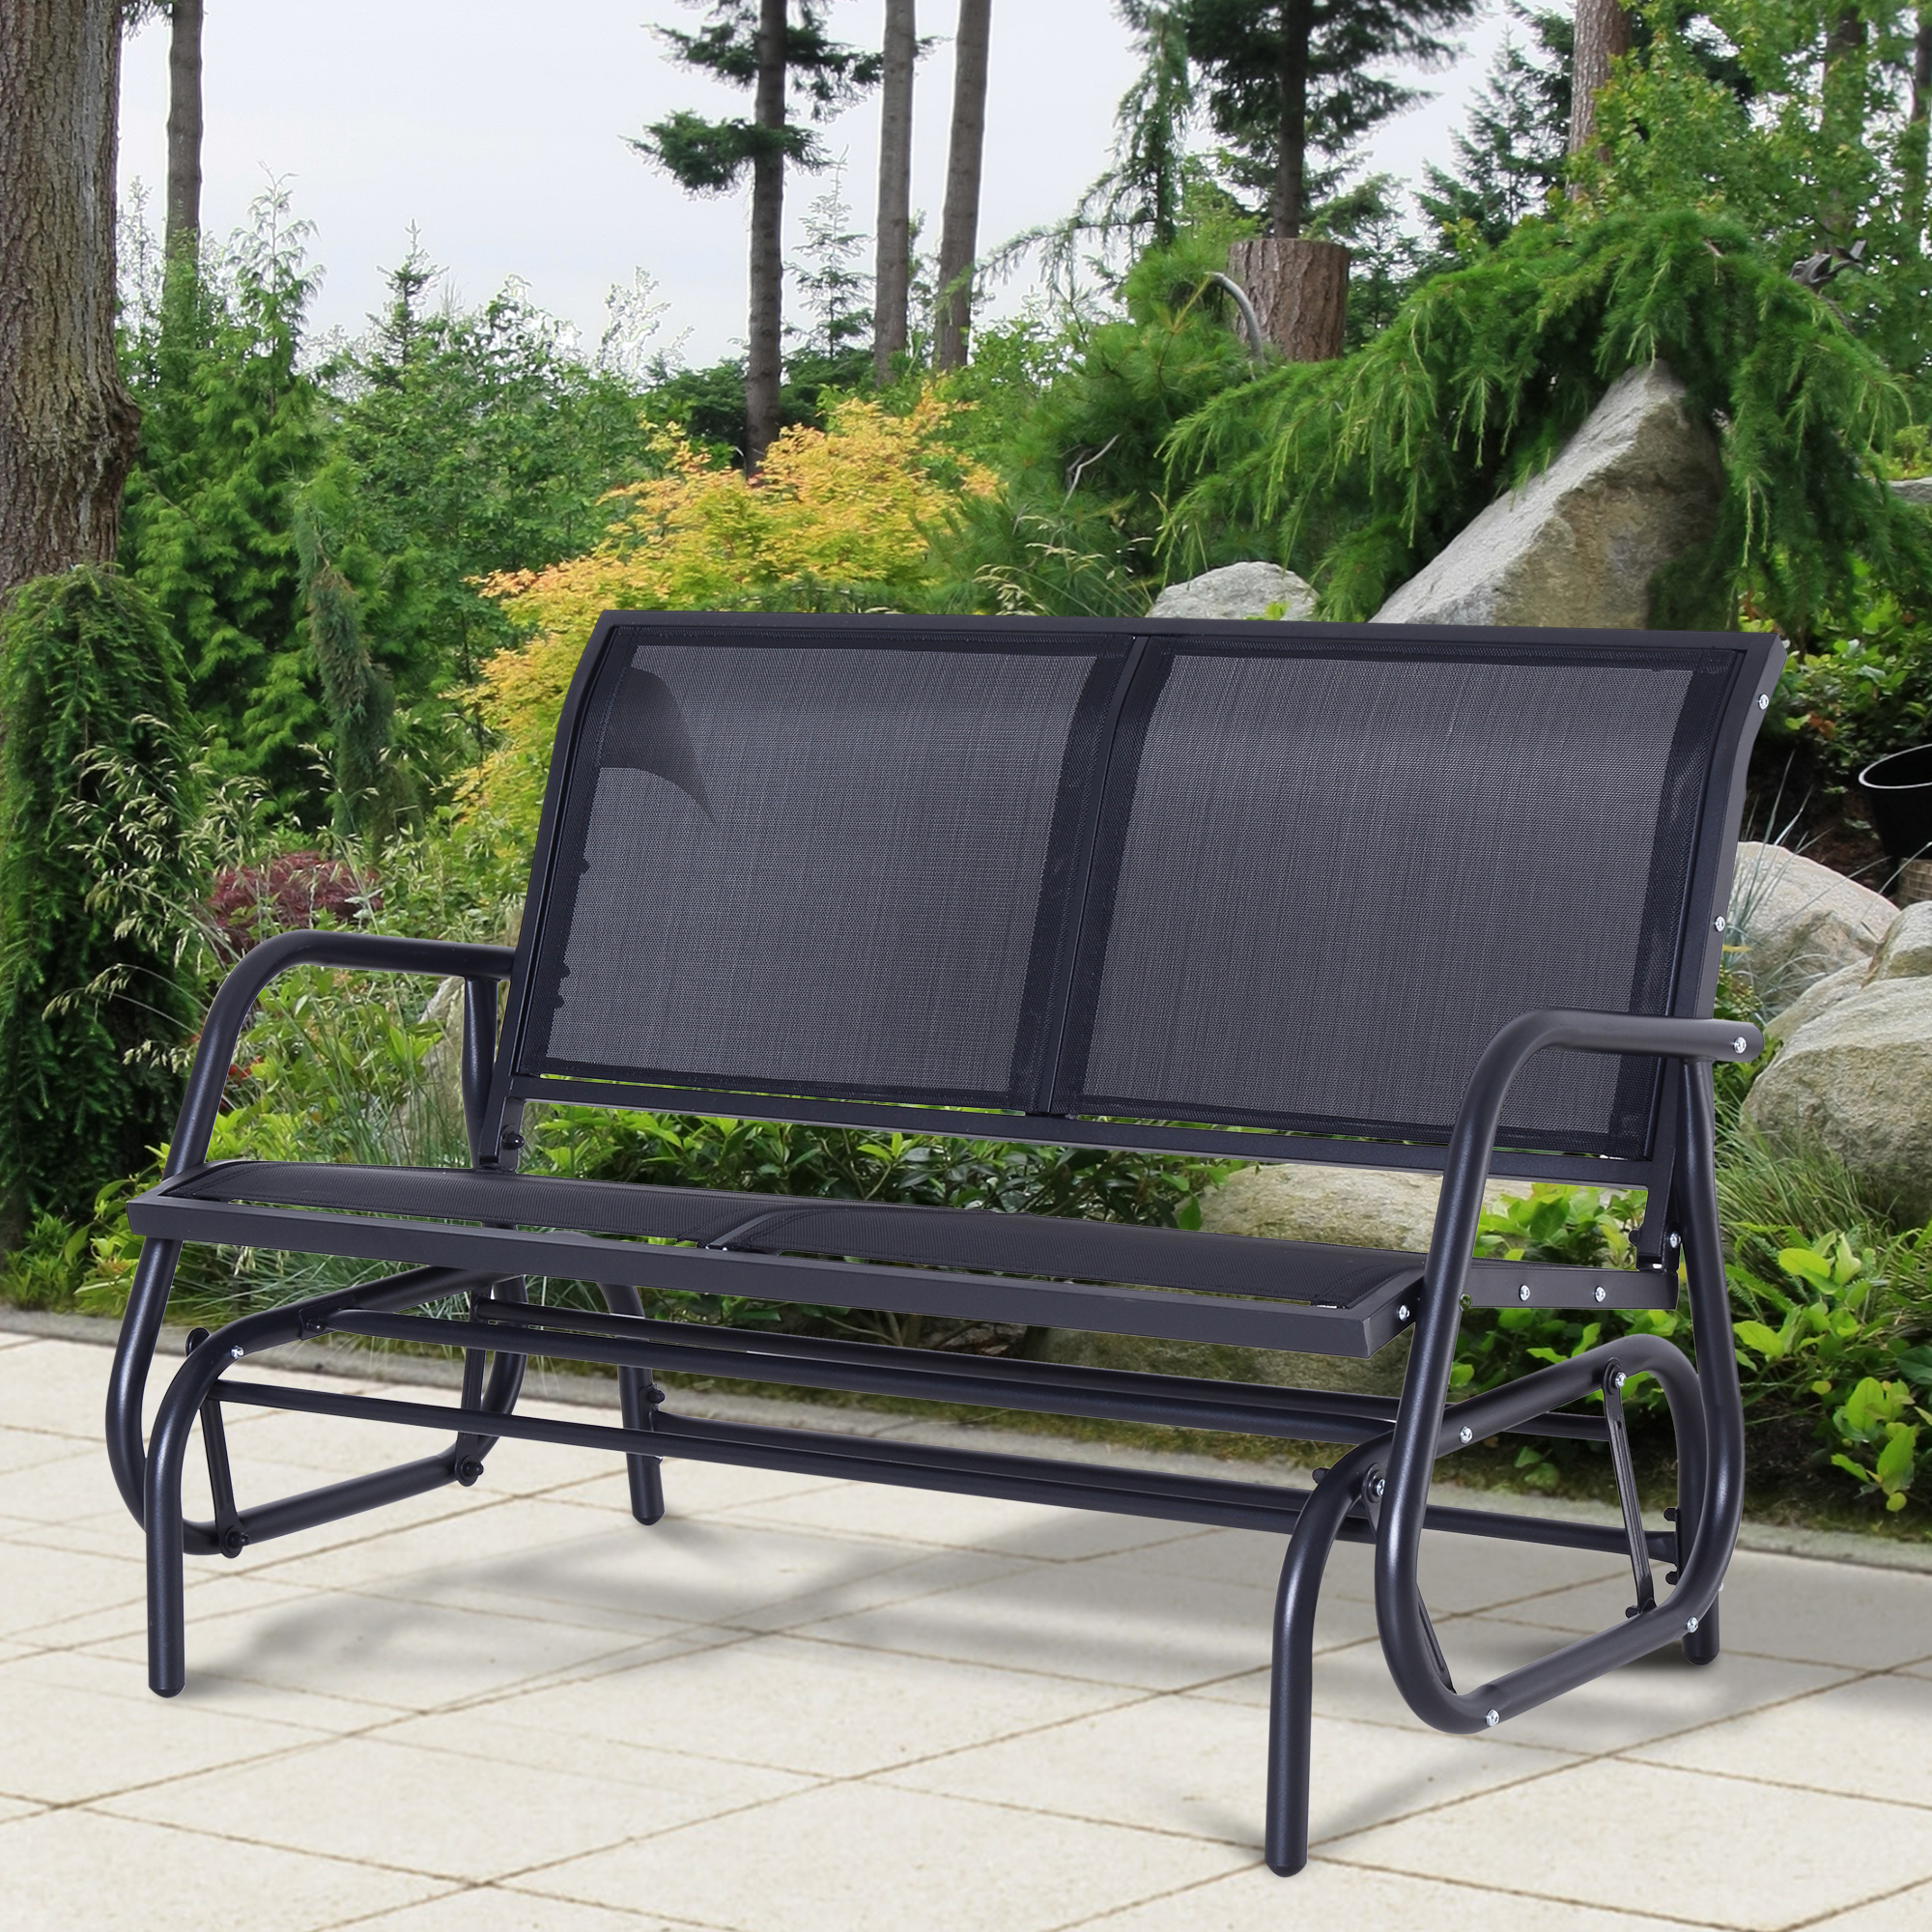 Details About Outsunny Patio Garden Glider Bench 2 Person Double Swing Chair Rocker Deck Black Within Recent 1 Person Antique Black Steel Outdoor Gliders (View 6 of 25)